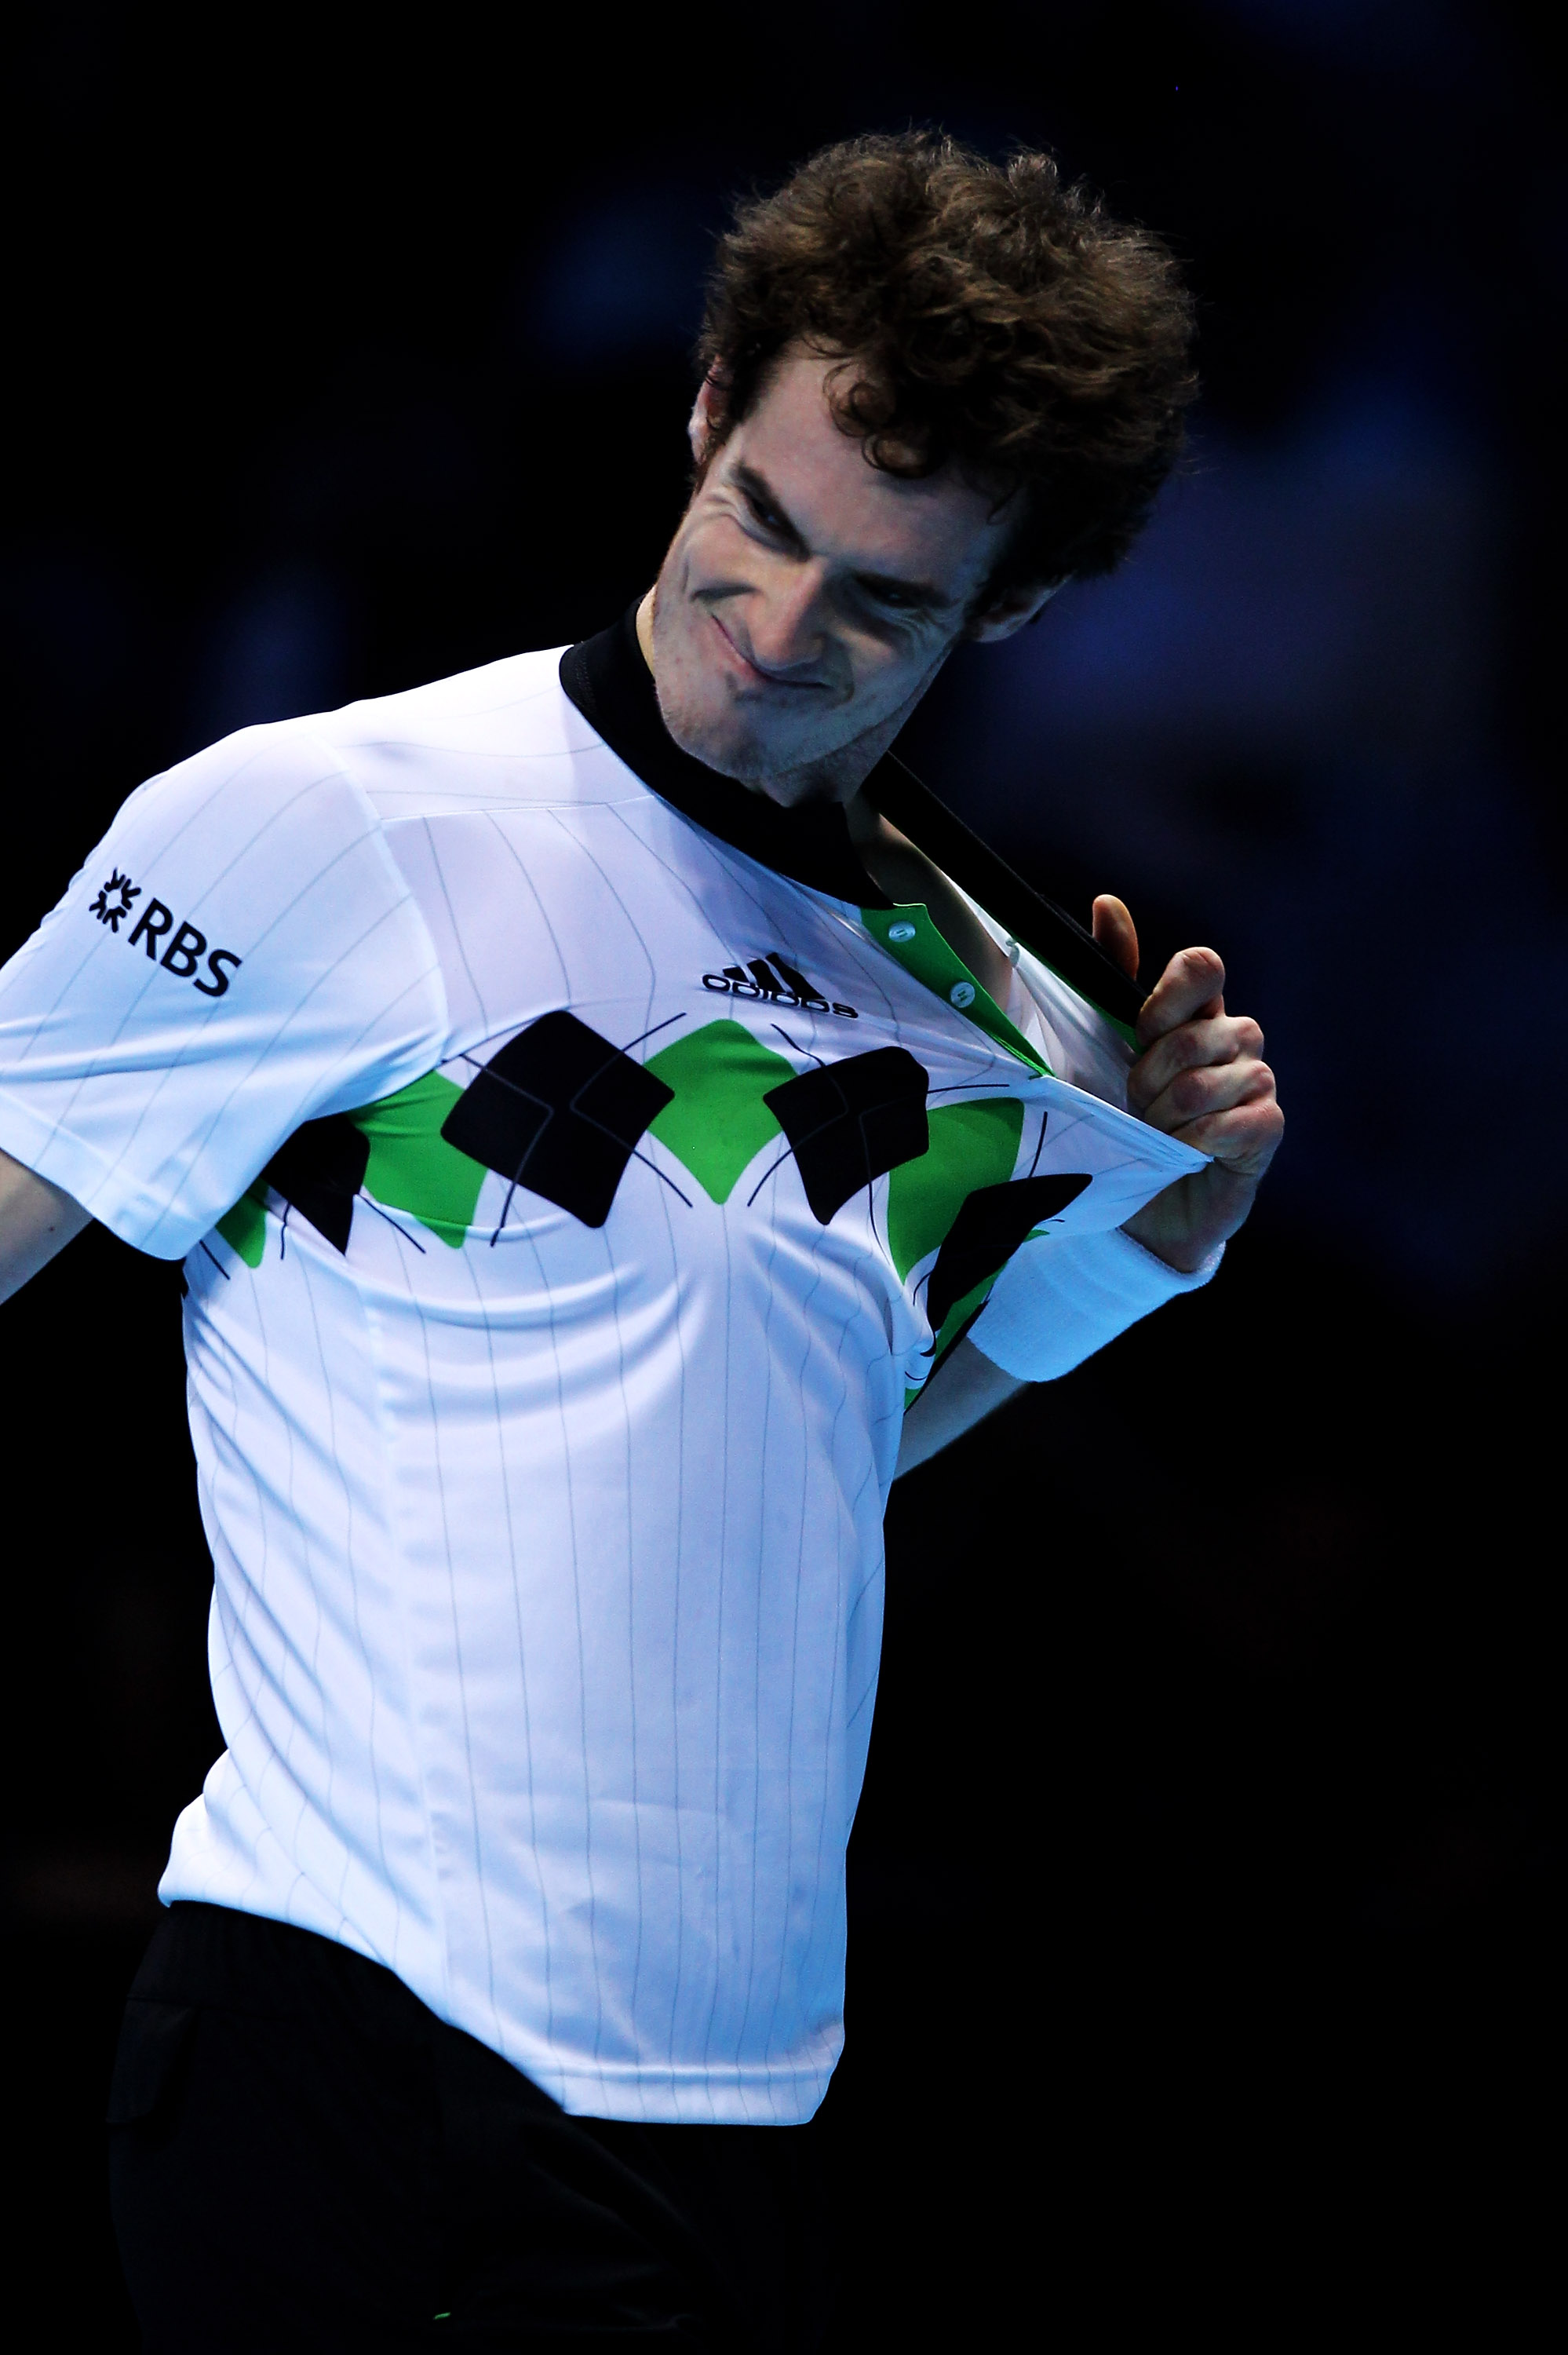 LONDON, ENGLAND - NOVEMBER 27:  Andy Murray of Great Britain reacts to a play during his men's semi-final match against Rafael Nadal of Spain during the ATP World Tour Finals at O2 Arena on November 27, 2010 in London, England.  (Photo by Matthew Lewis/Ge